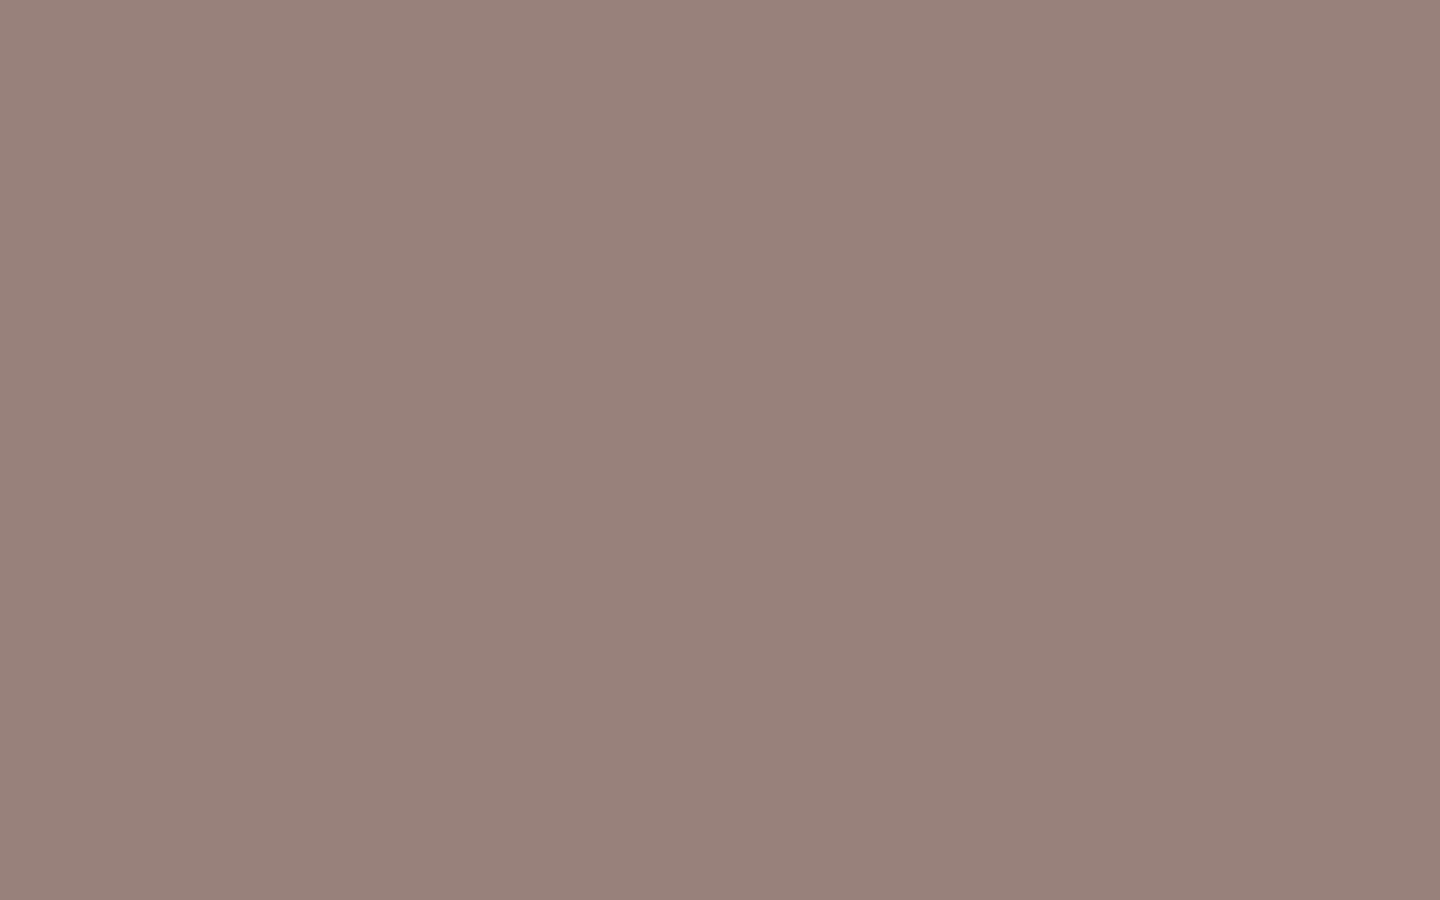 1440x900 Cinereous Solid Color Background